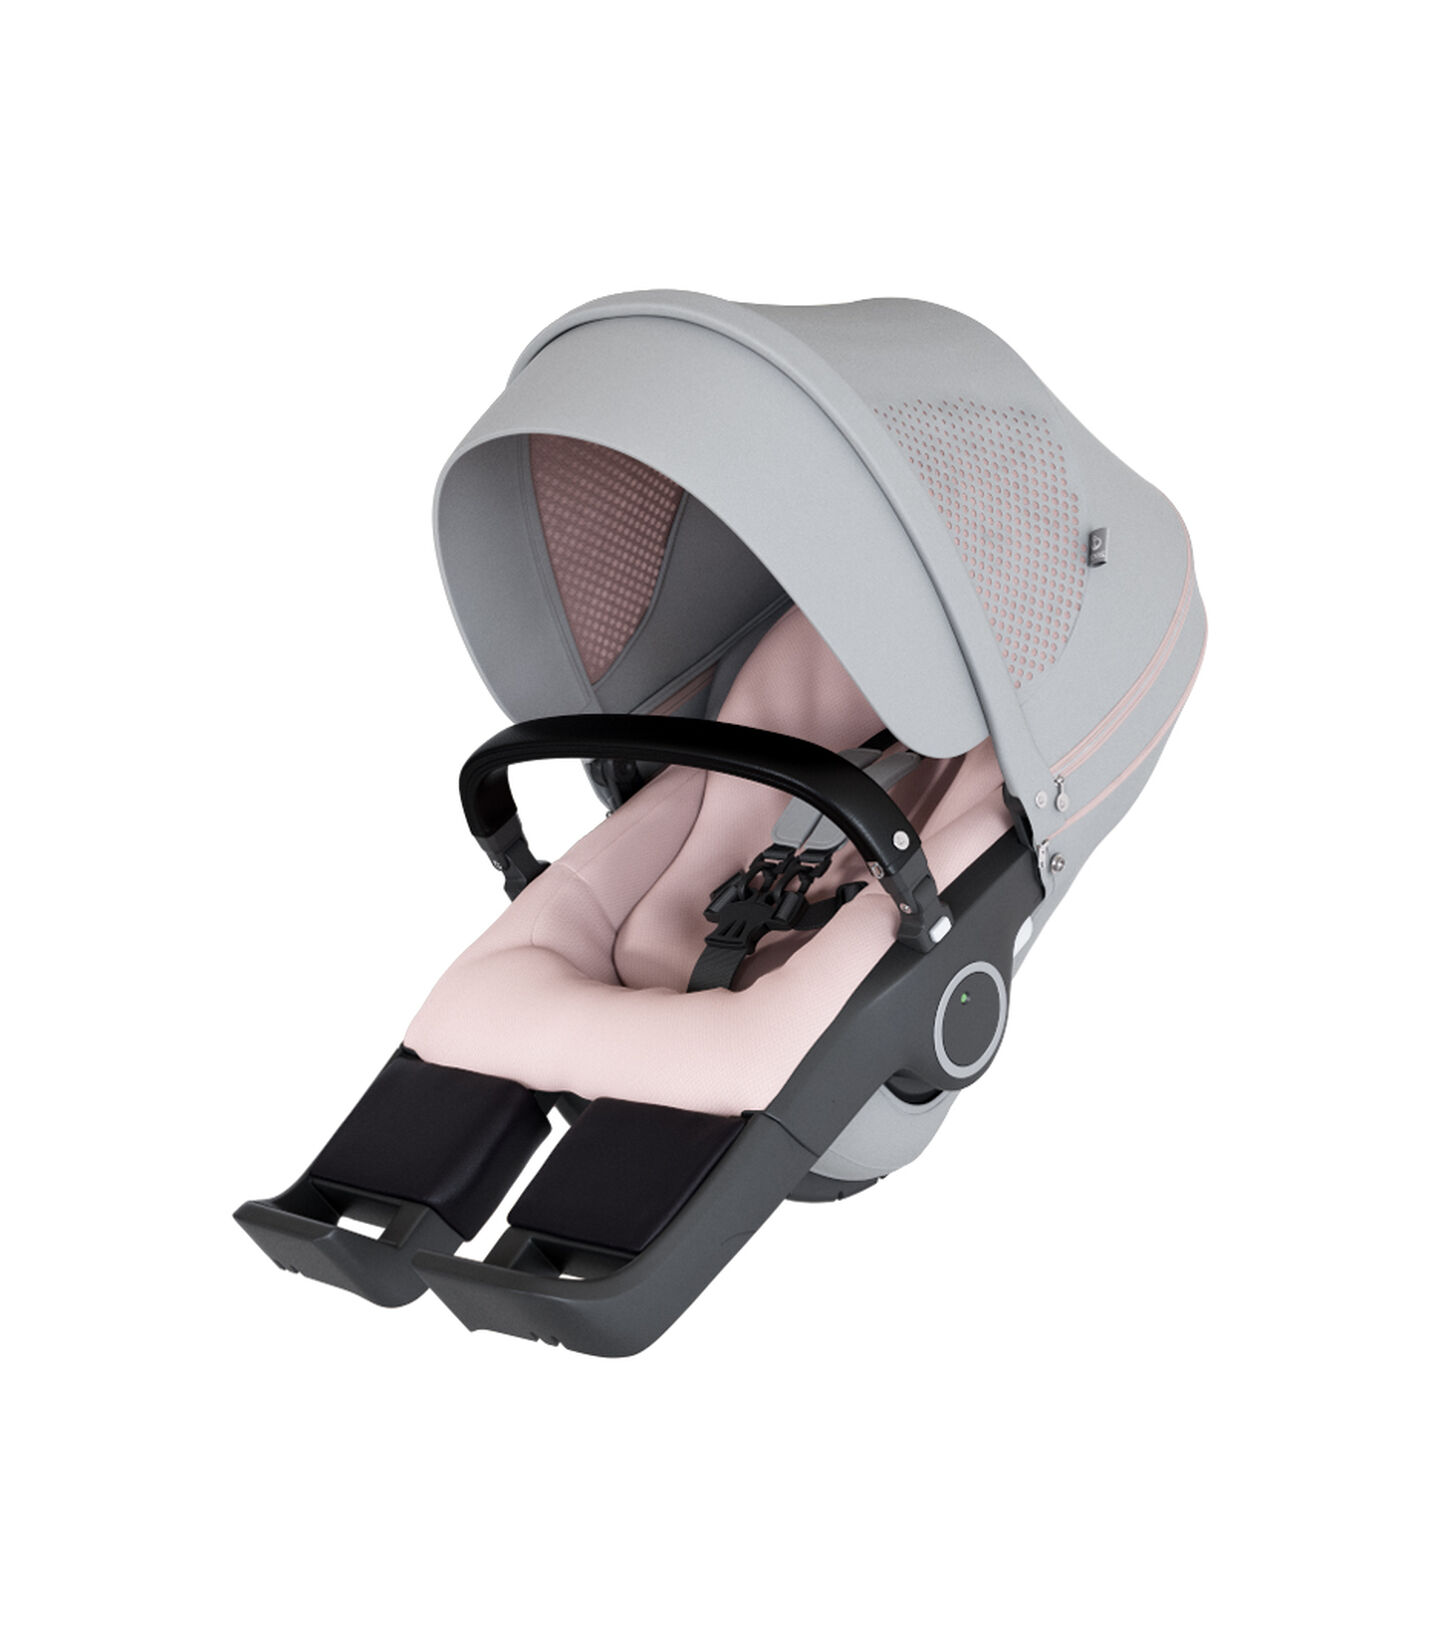 Stokke® Stroller Seat Athleisure Pink, Athleisure Pink, mainview